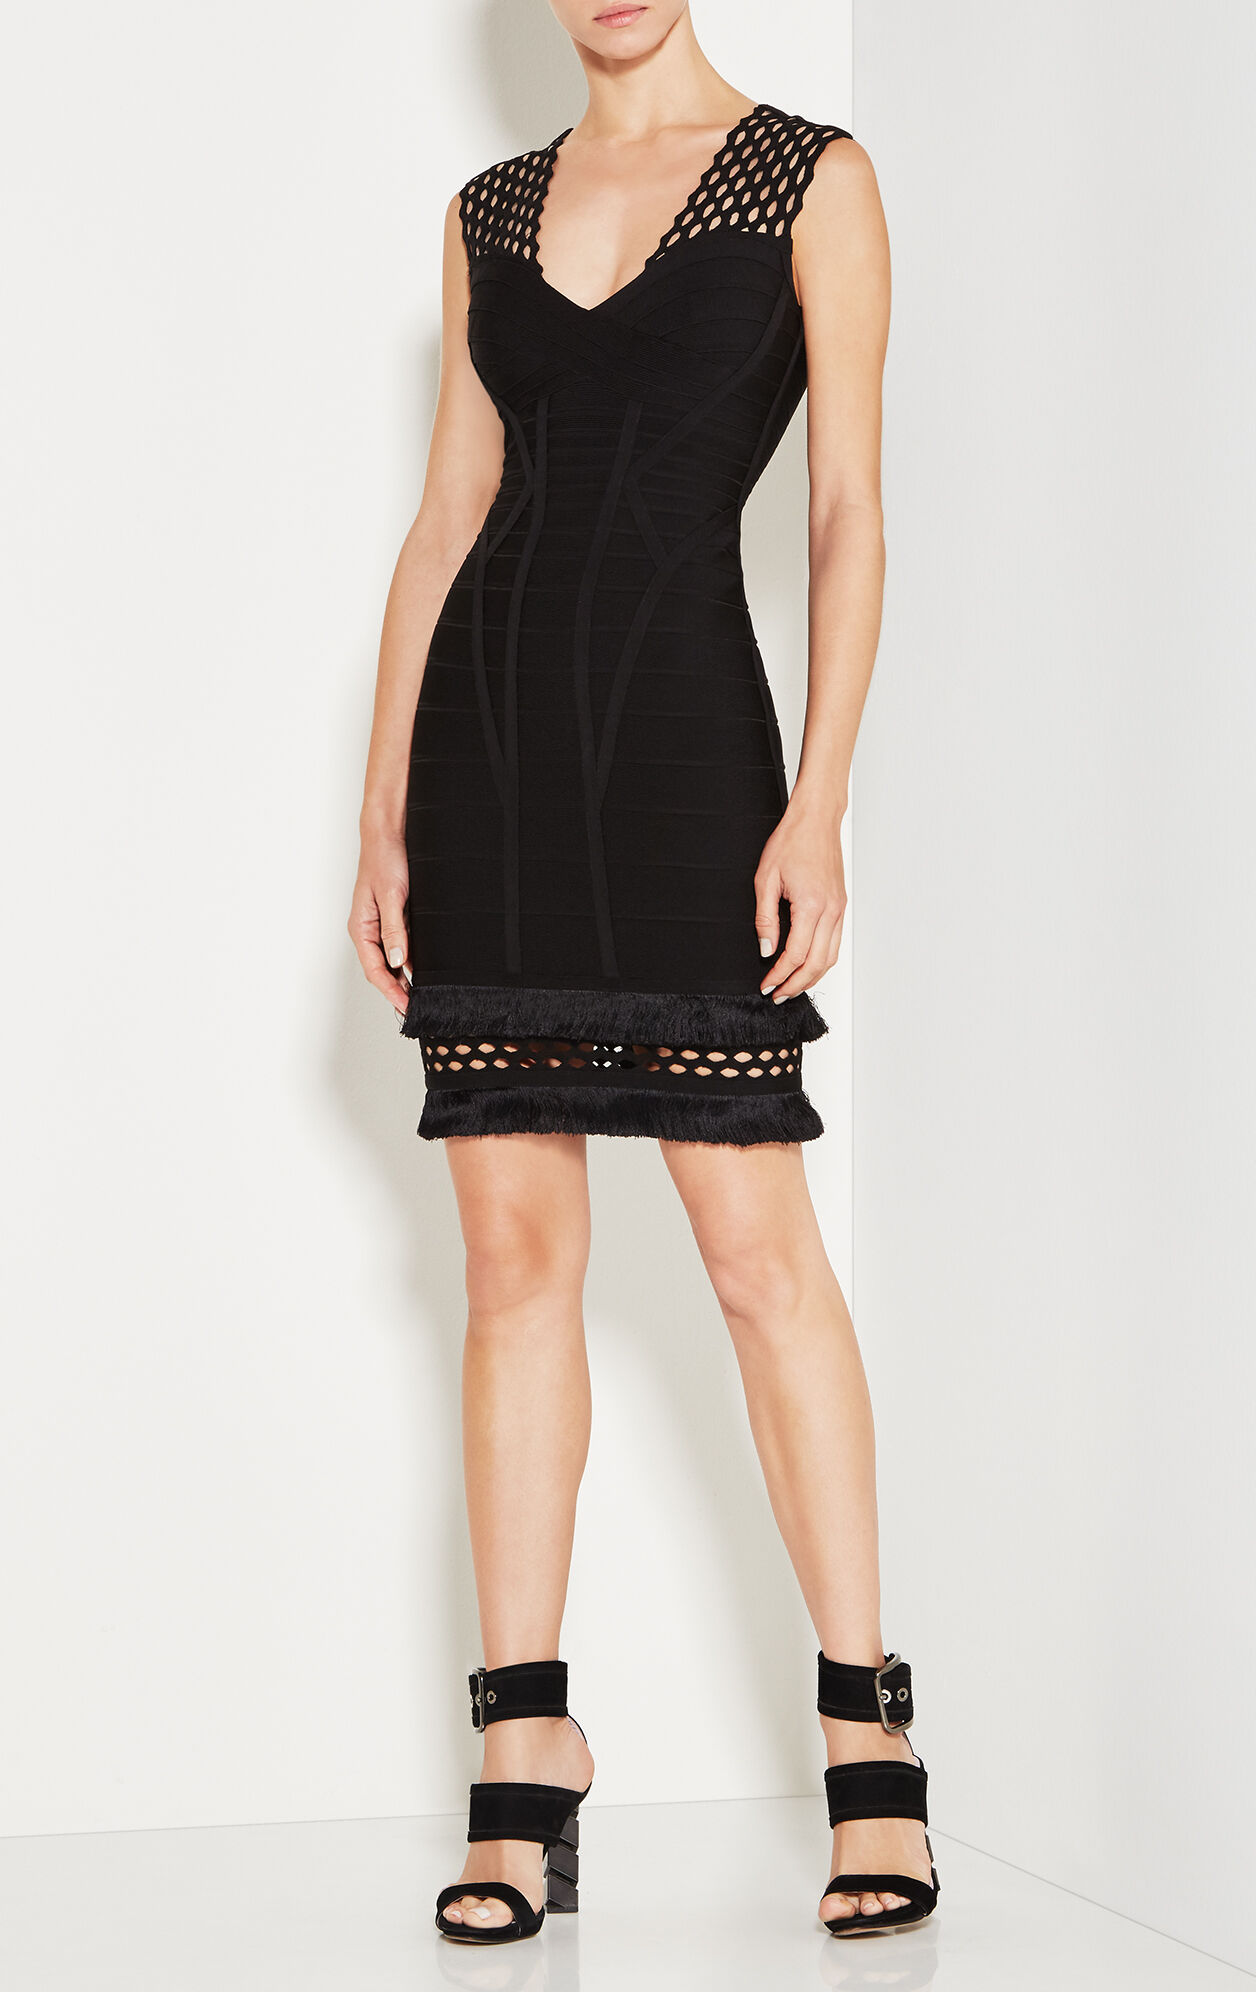 Carrey Cutout Fringe-Trimmed Bandage Dress